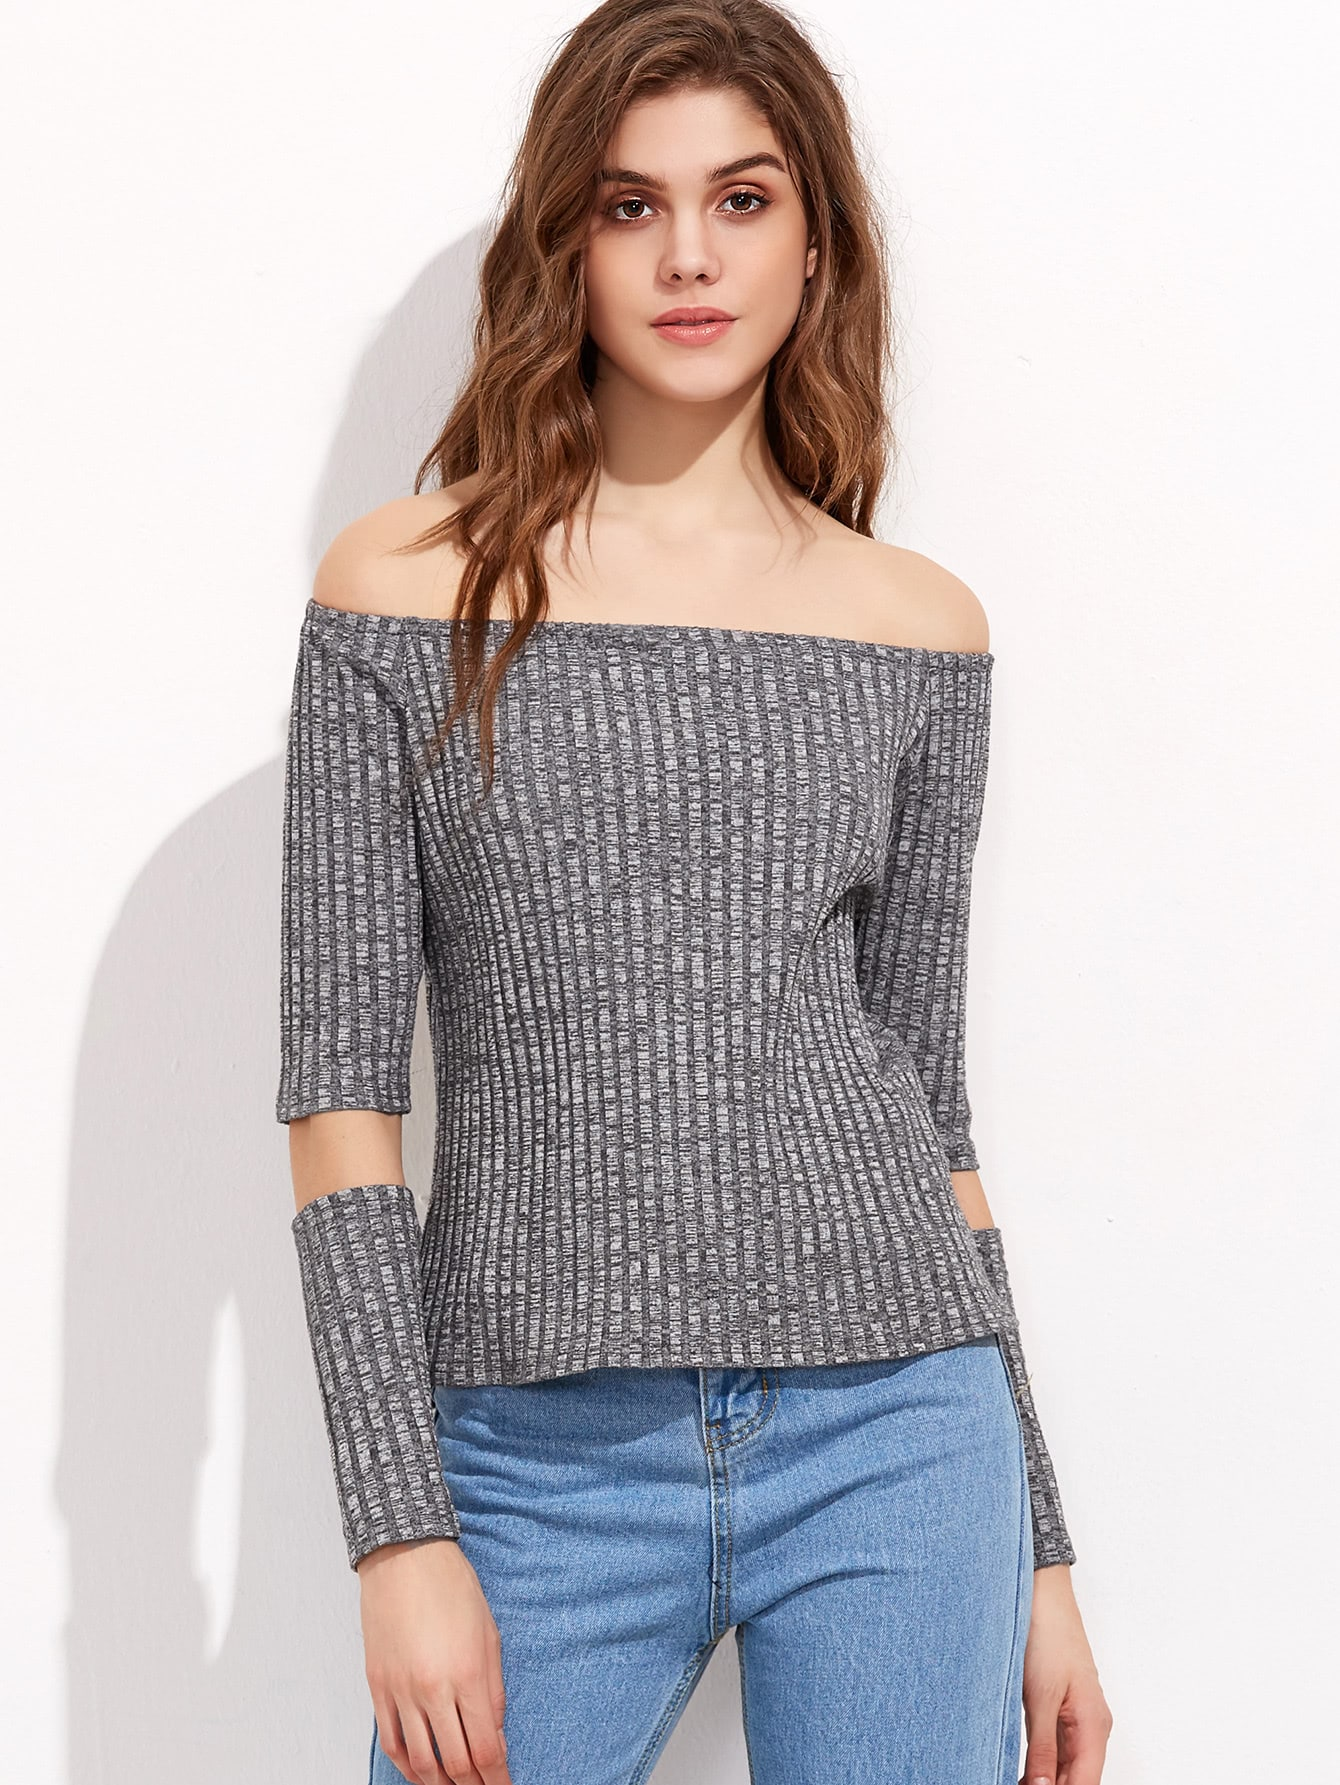 Marled Grey Off Shoulder Ribbed T-shirt With Detachable Sleeve tee161130703